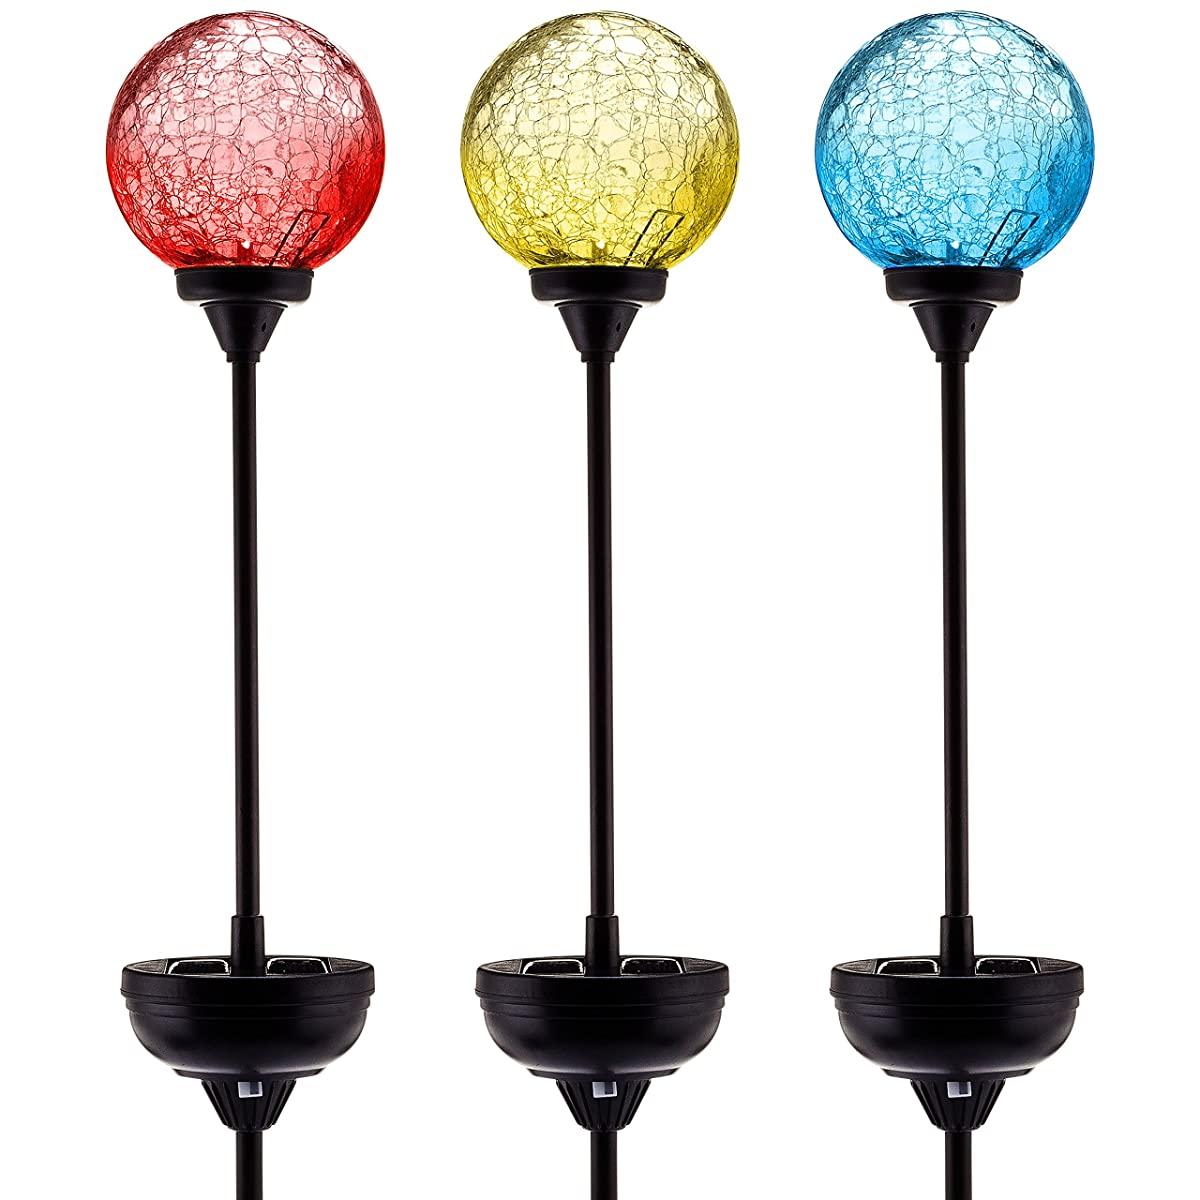 Solar Garden Stake Lights 3-Pack! - Cracked Glass LED Outdoor Patio Yard Art Statue Fairy Fountain Gnome Stained Lawn Sign Decor Ornaments - Color-changing Gazing Moonray Lamp Balls